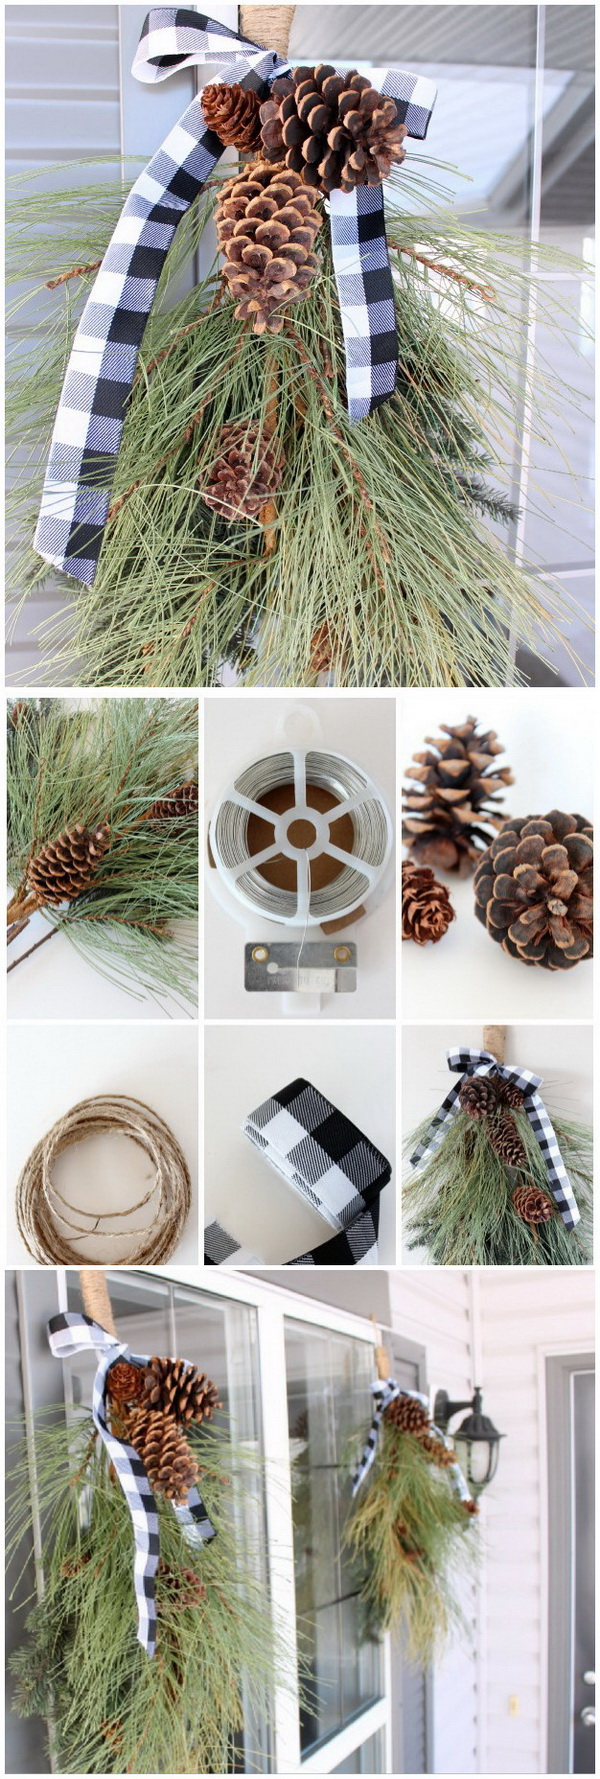 Winter Swag Made with Pine Greenery and Pinecones. This winter swag is an easy DIY holiday project. It will literally take less than 30 minutes to put two of them together. You can use real greenery for your swag or faux or a combination of both. But I love the real ones with the natural elements. Great for decorating your front door!